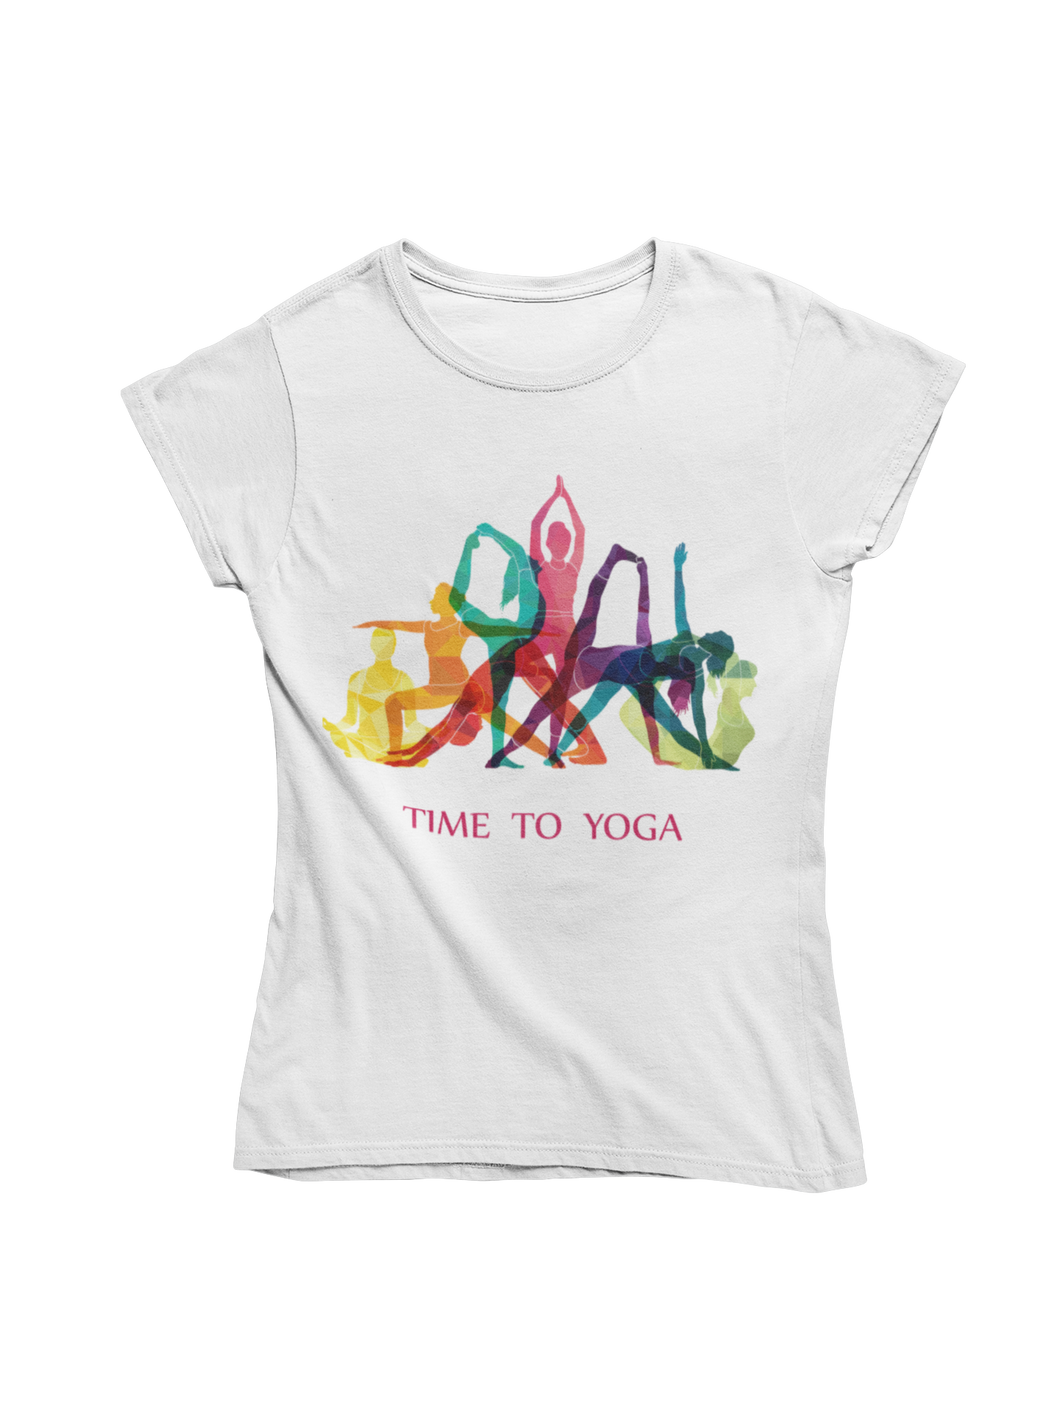 - Unisex-T-Shirt - Time to Yoga -